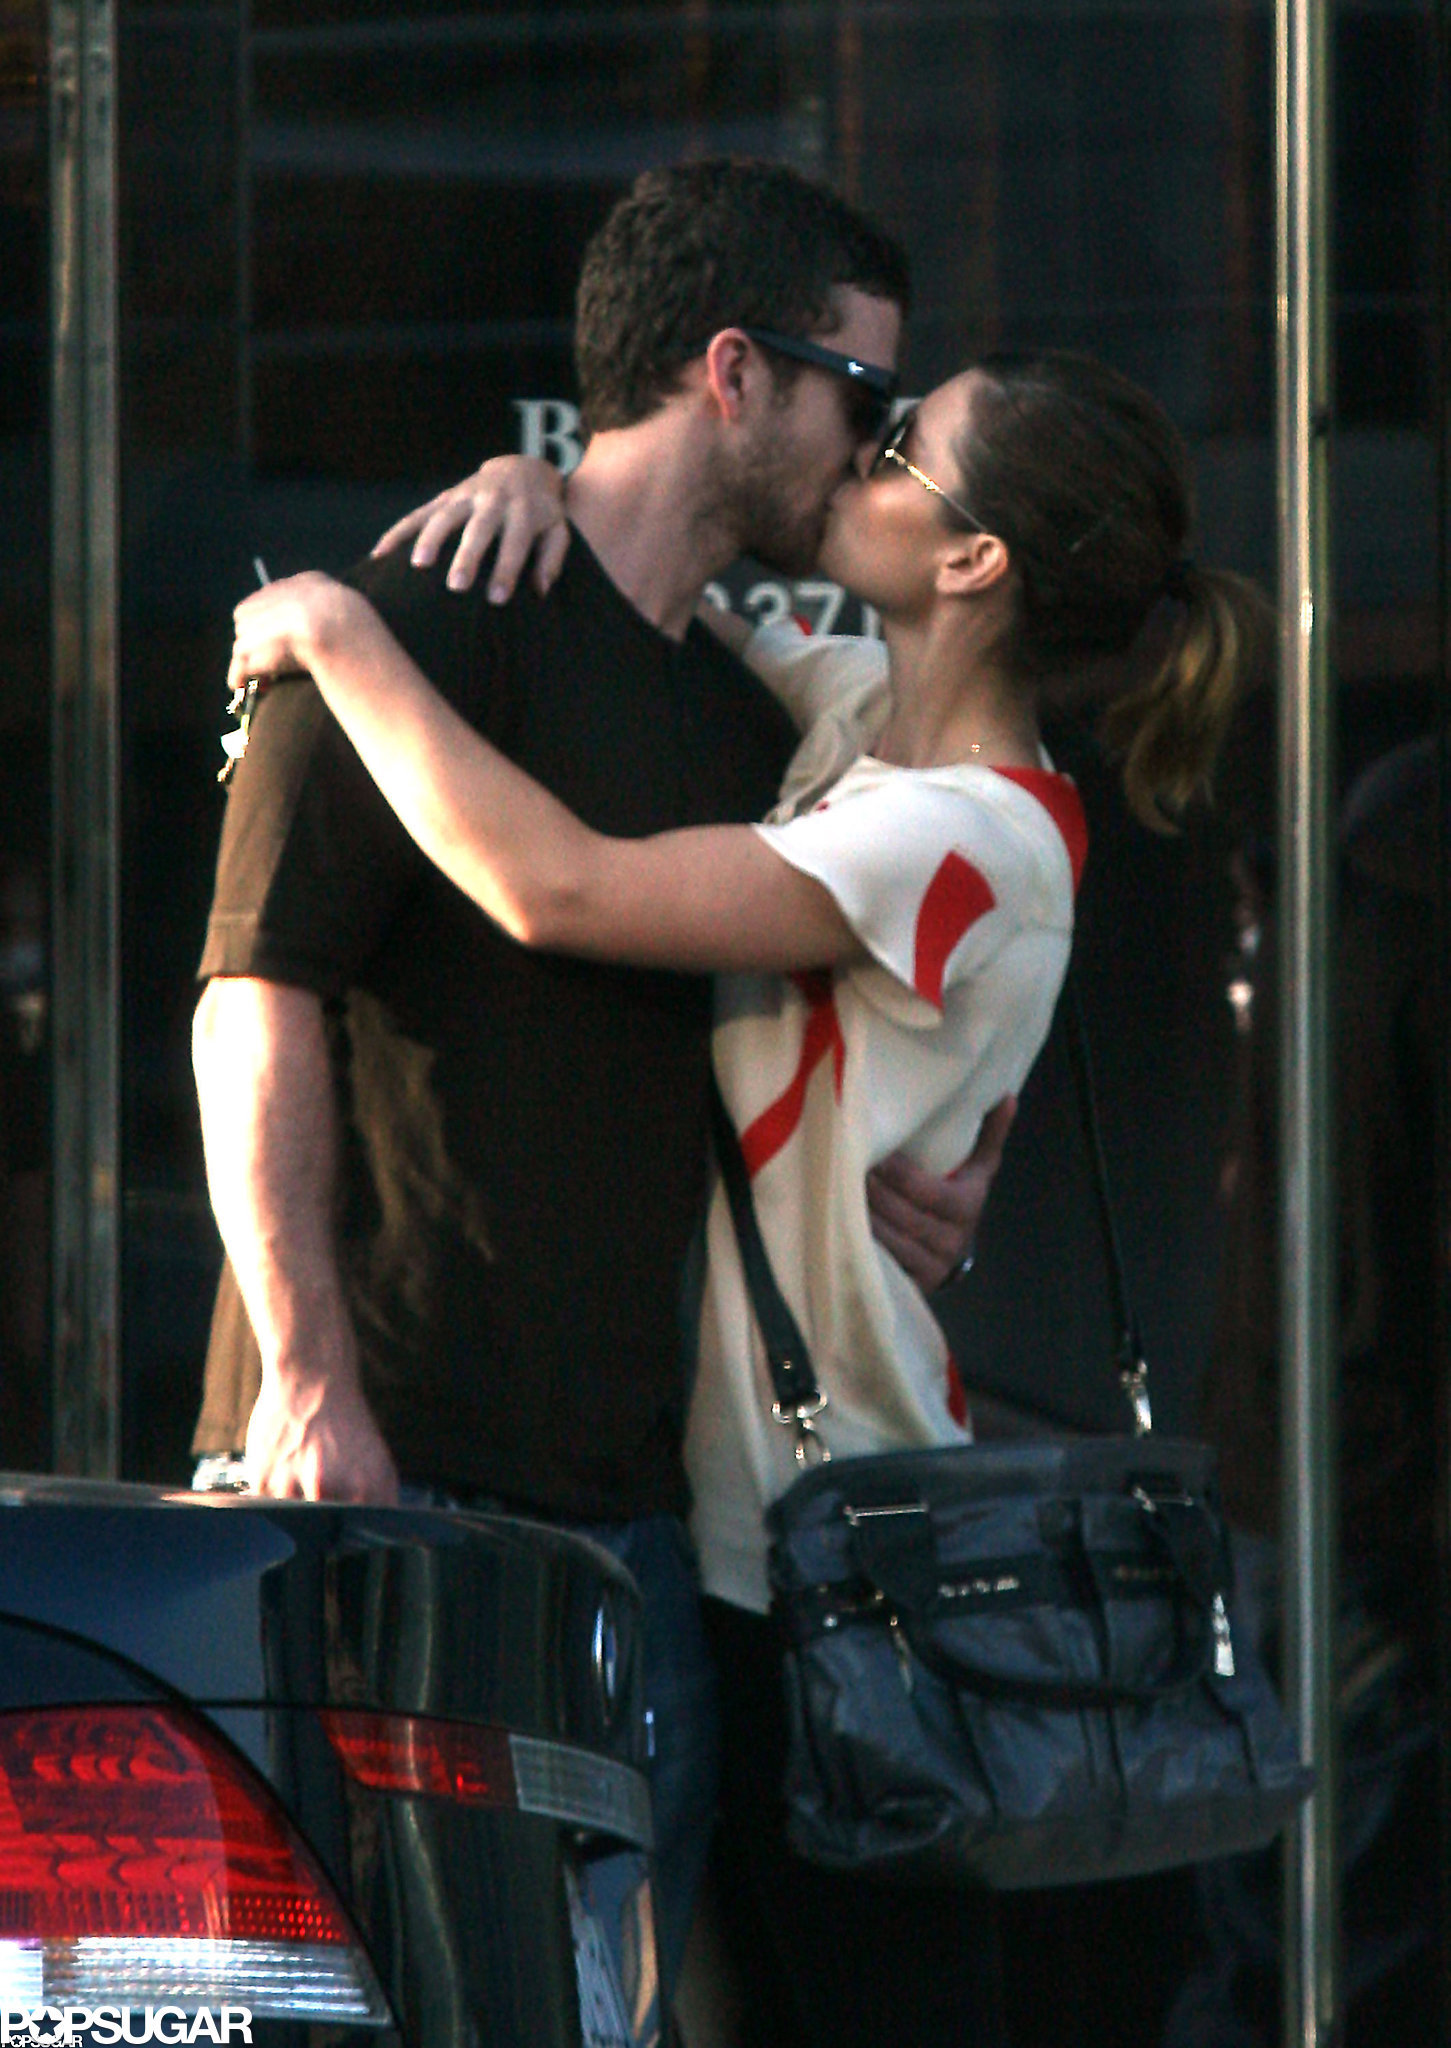 Justin Timberlake embraced Jessica Biel in LA back in August 2008.